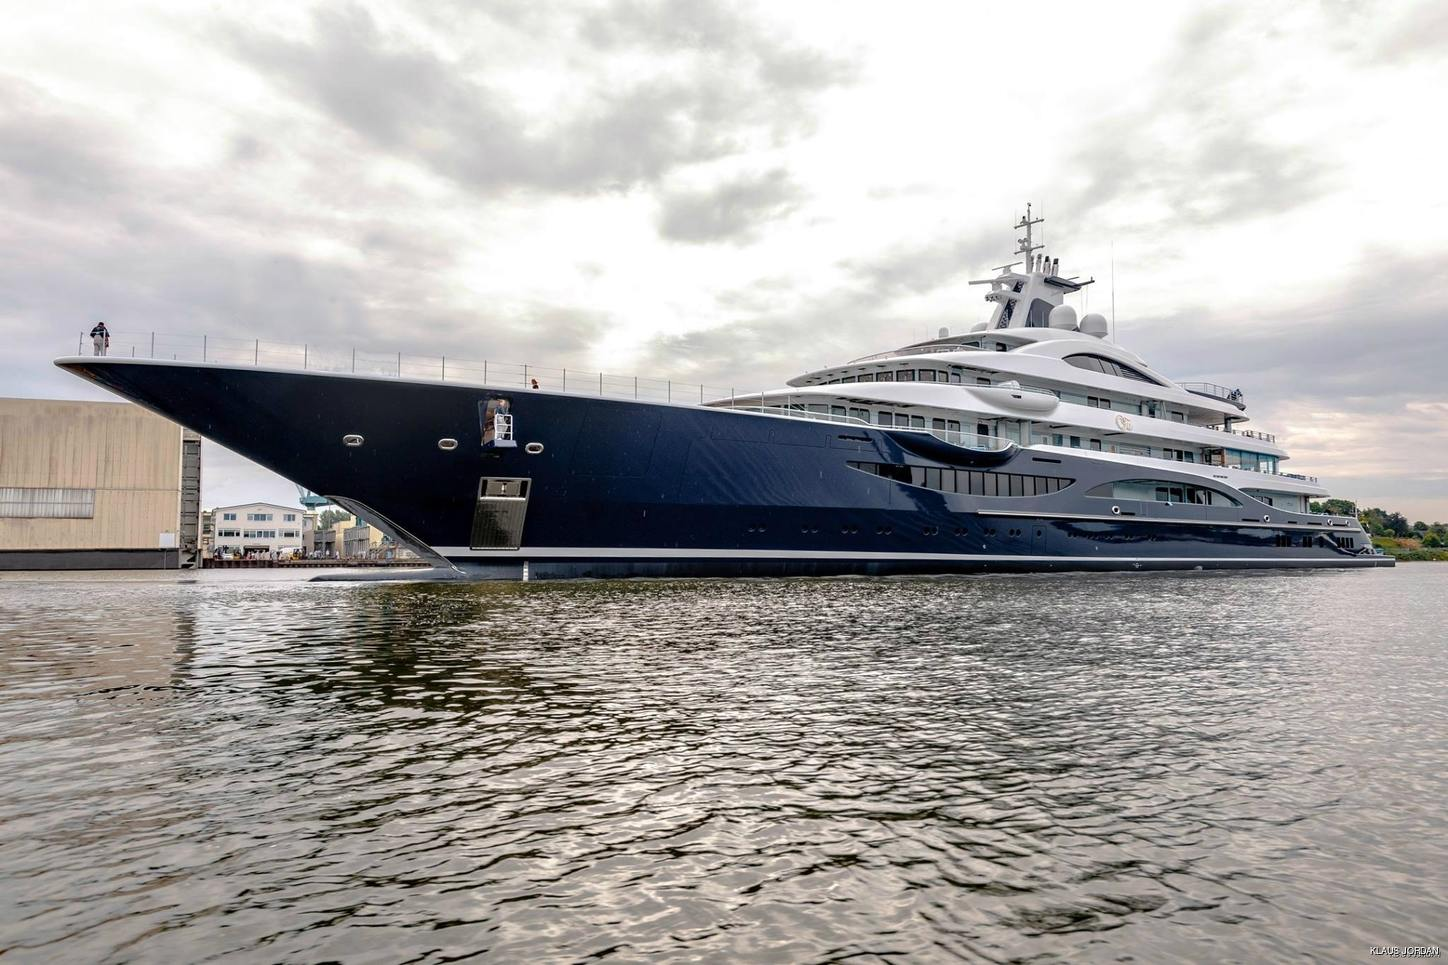 superyacht TIS at Lurssen shipyard